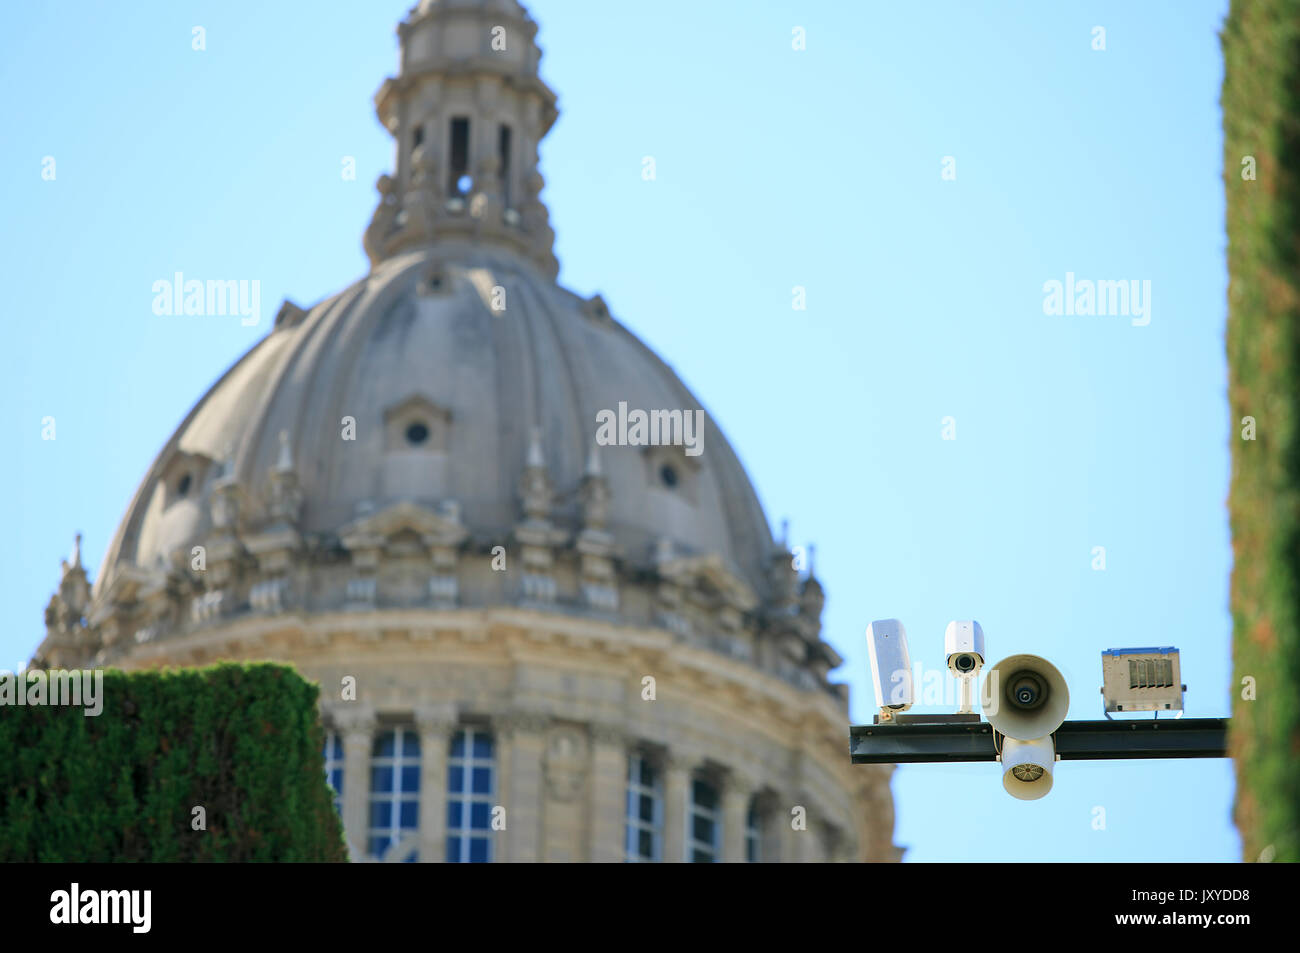 Safety camera sited in Montjuic - Stock Image